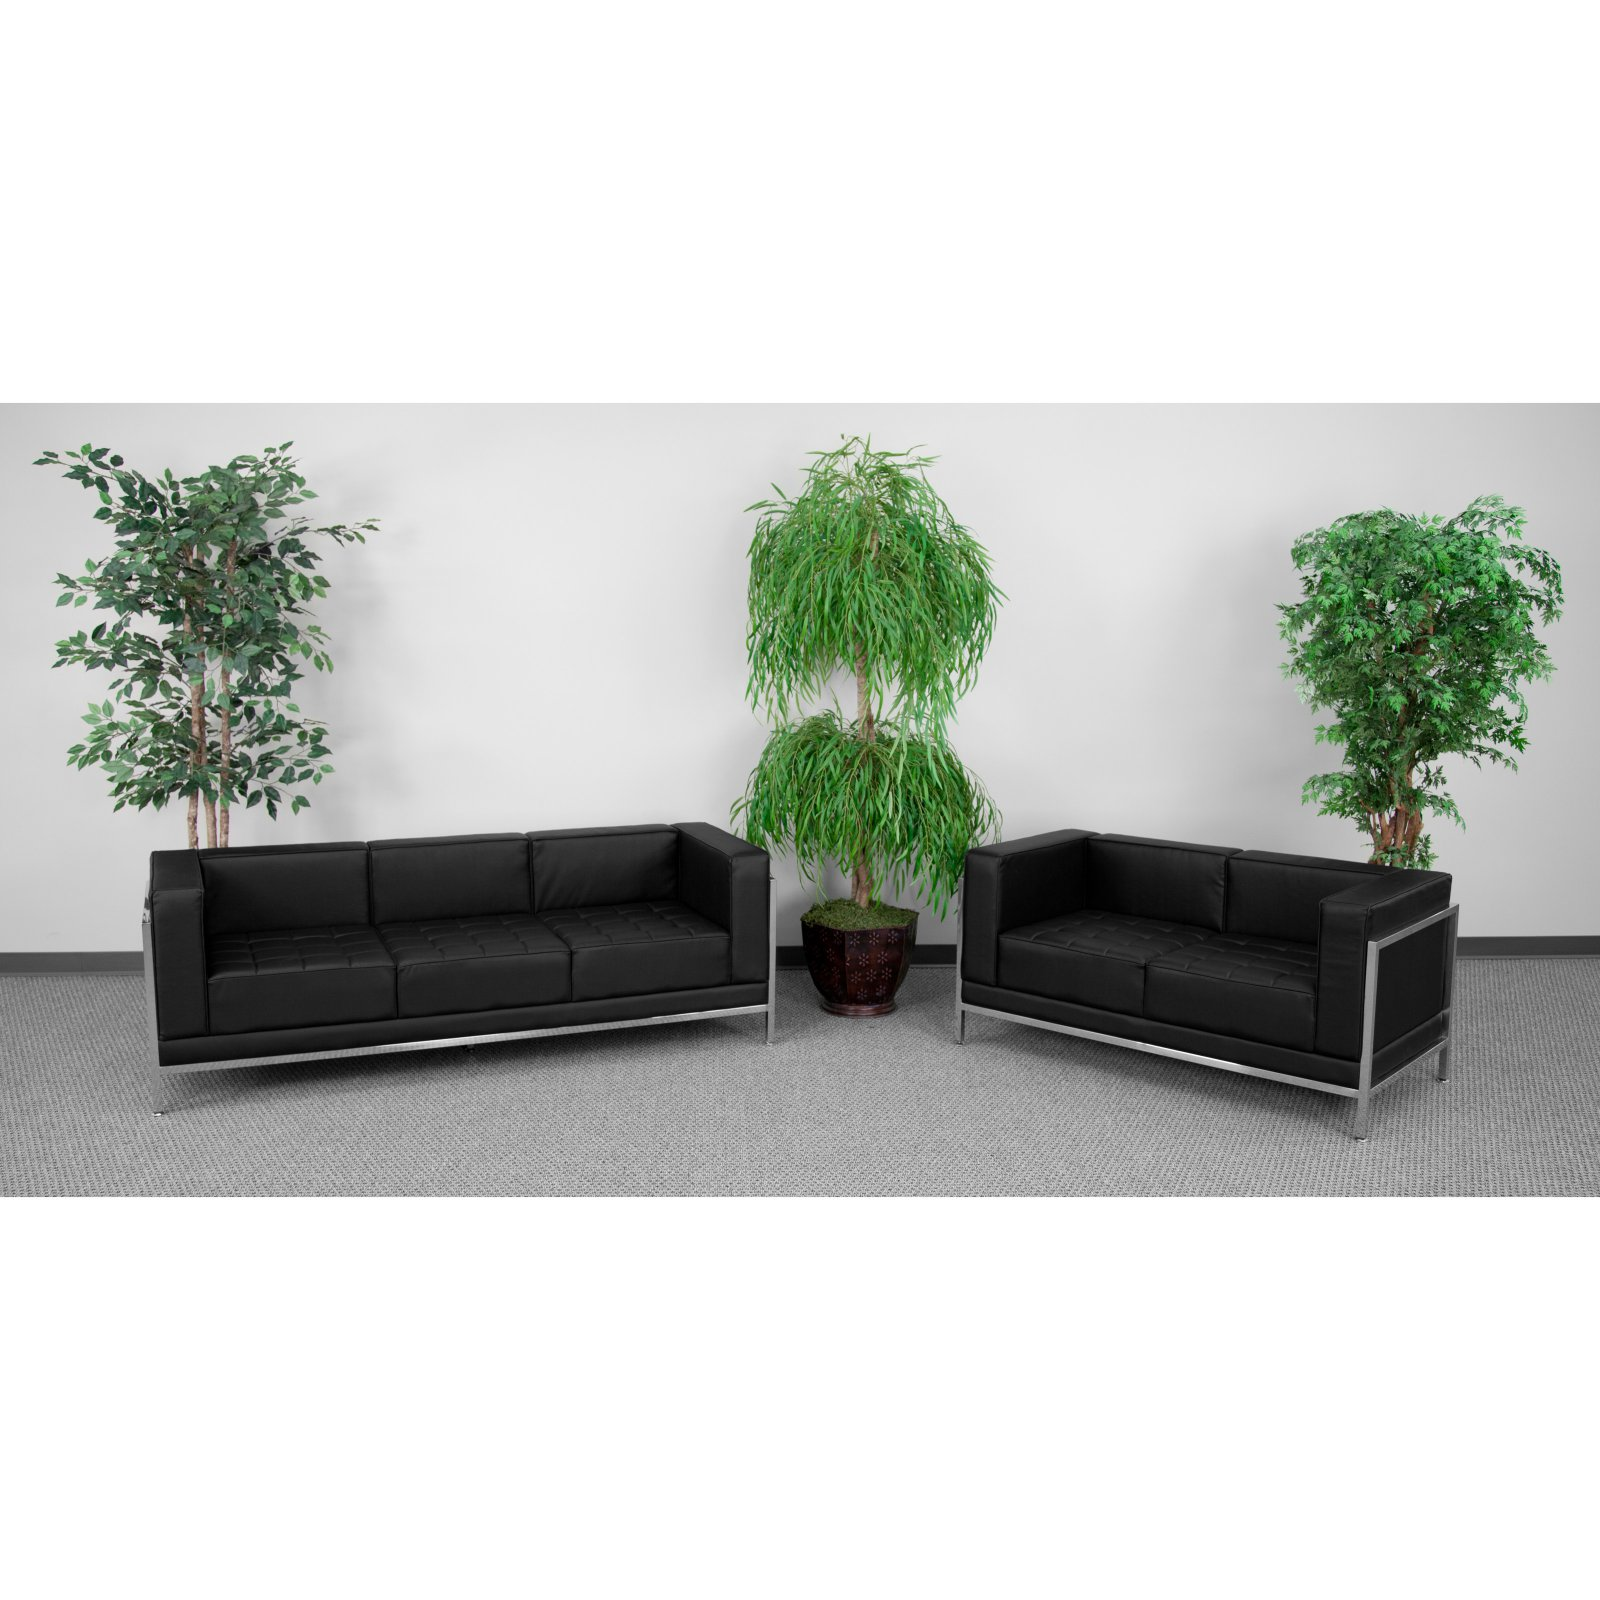 Flash Furniture HERCULES Imagination Series 2 Piece Sofa and Loveseat Set